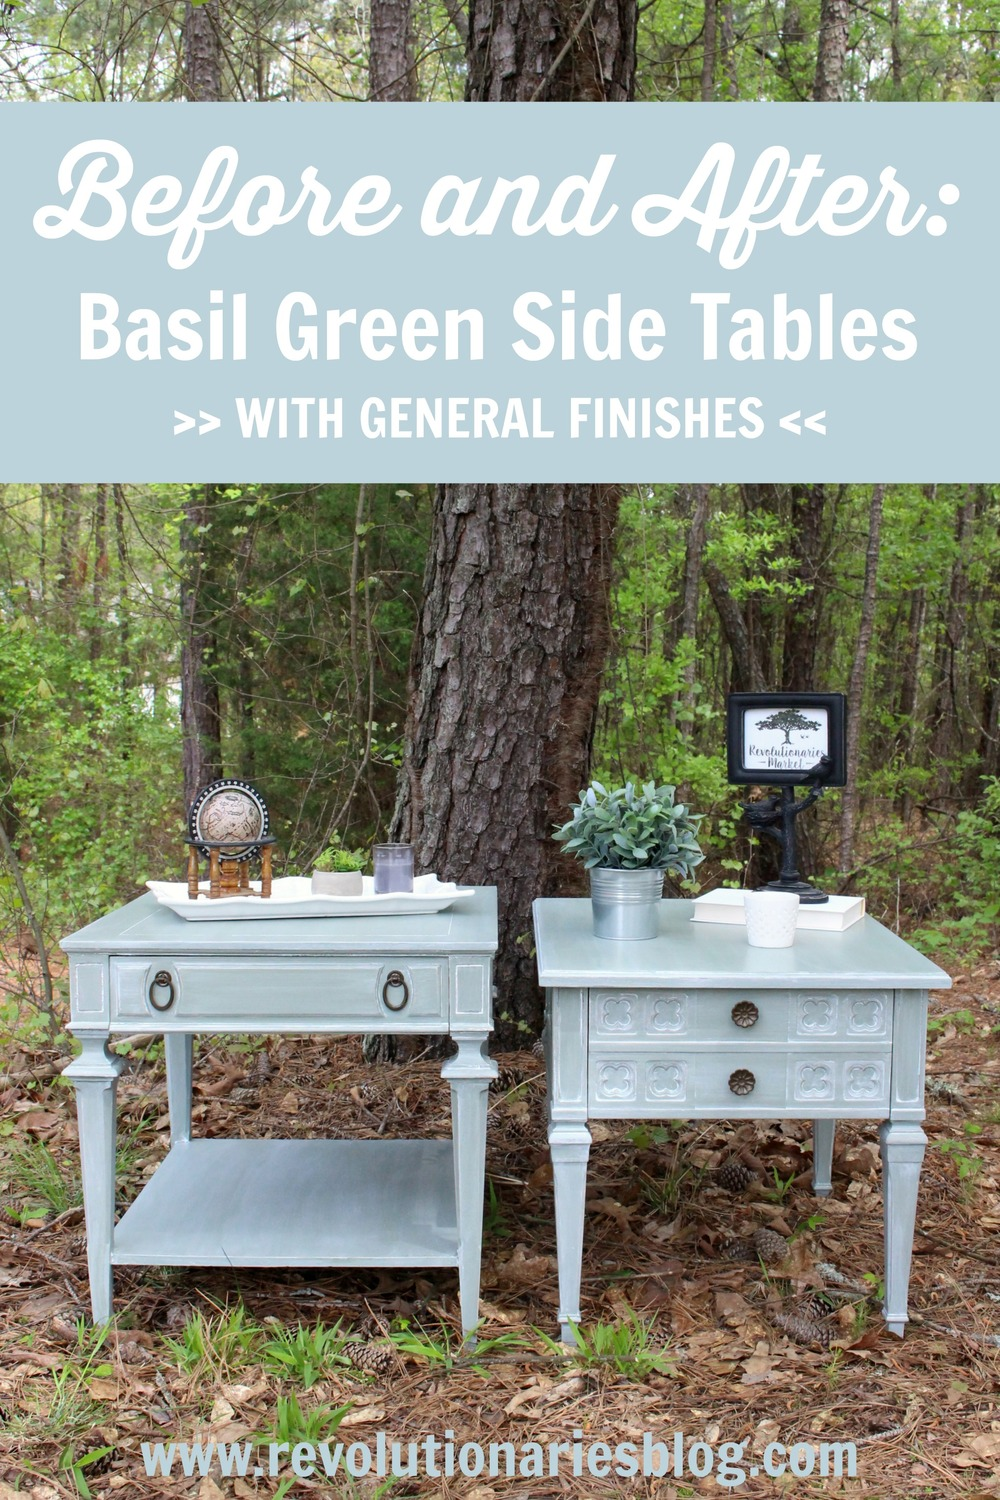 basil-green-side-tables-1.jpg